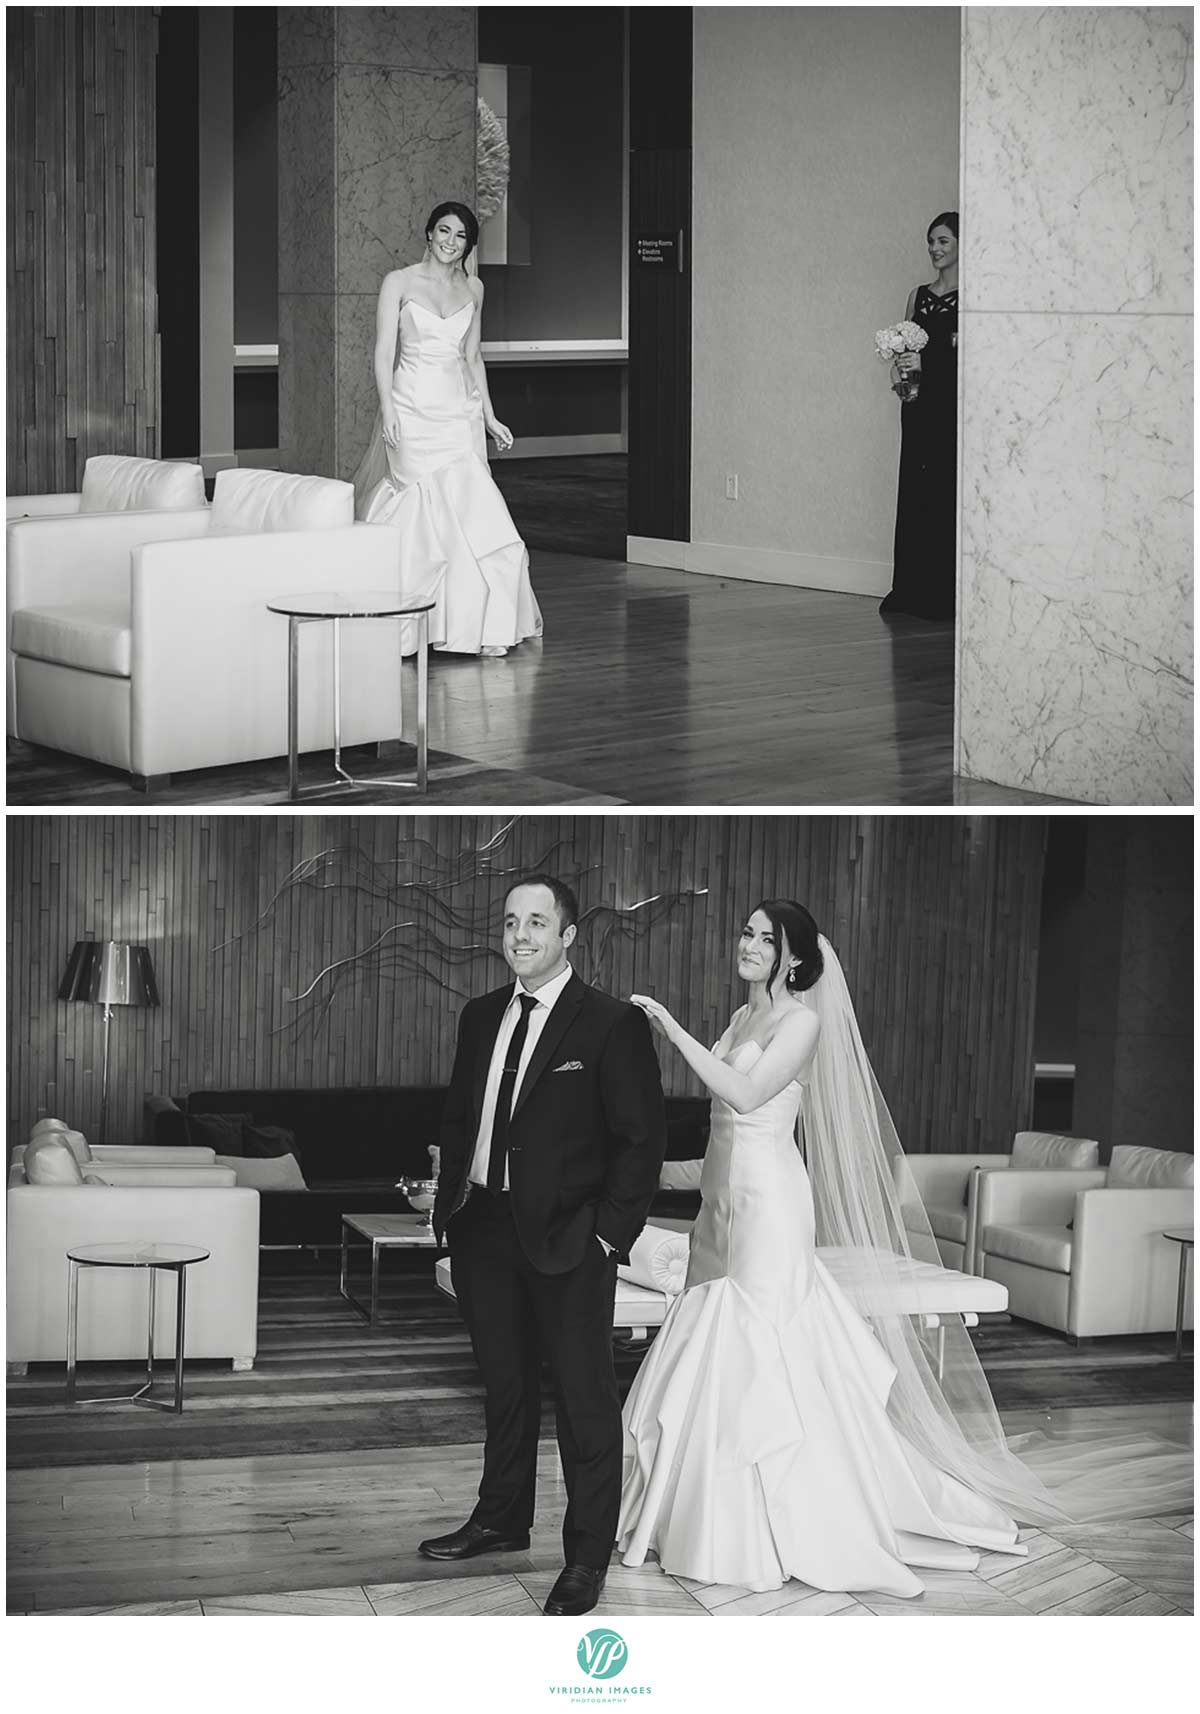 Peachtree_Club_Atlanta_Wedding_Viridian_Images_Photography-15